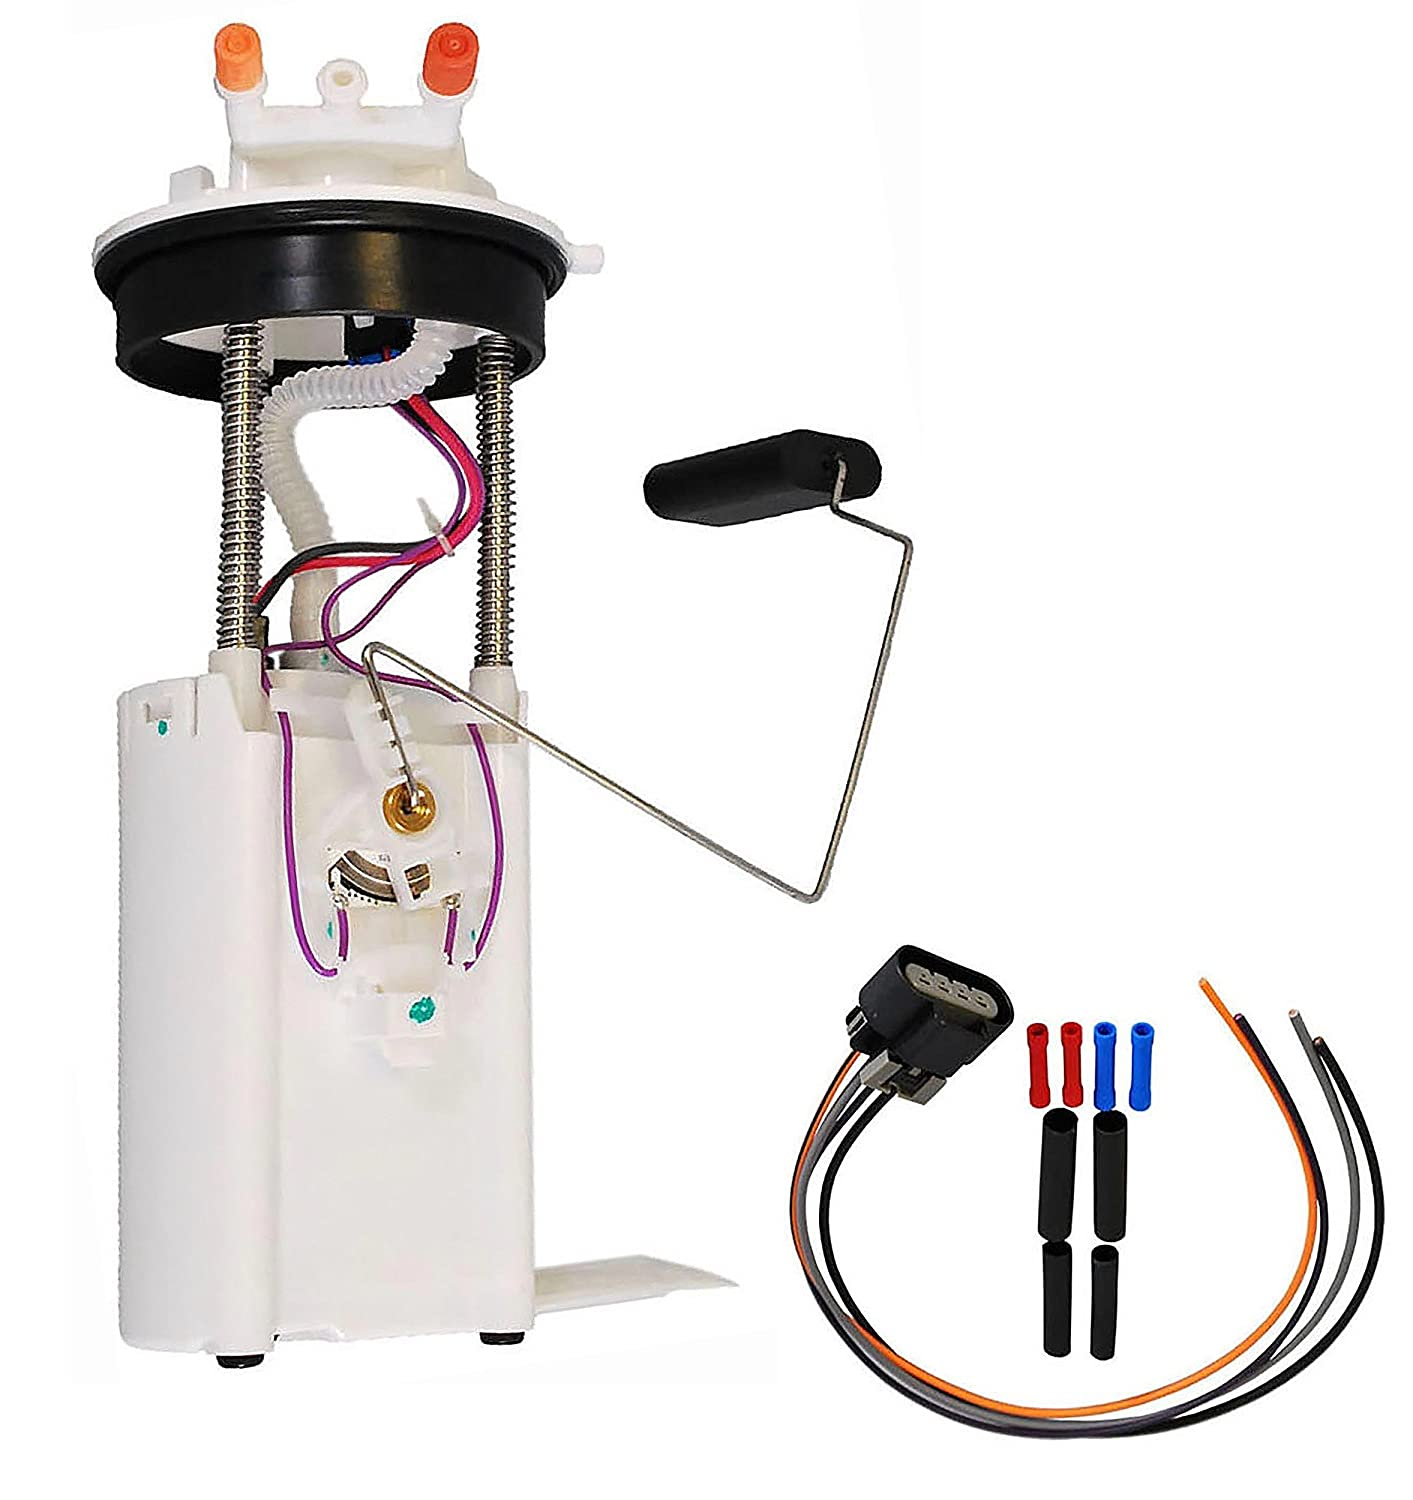 Amazon.com: APDTY 19179597 Fuel Pump Module & Sender Sending ... on